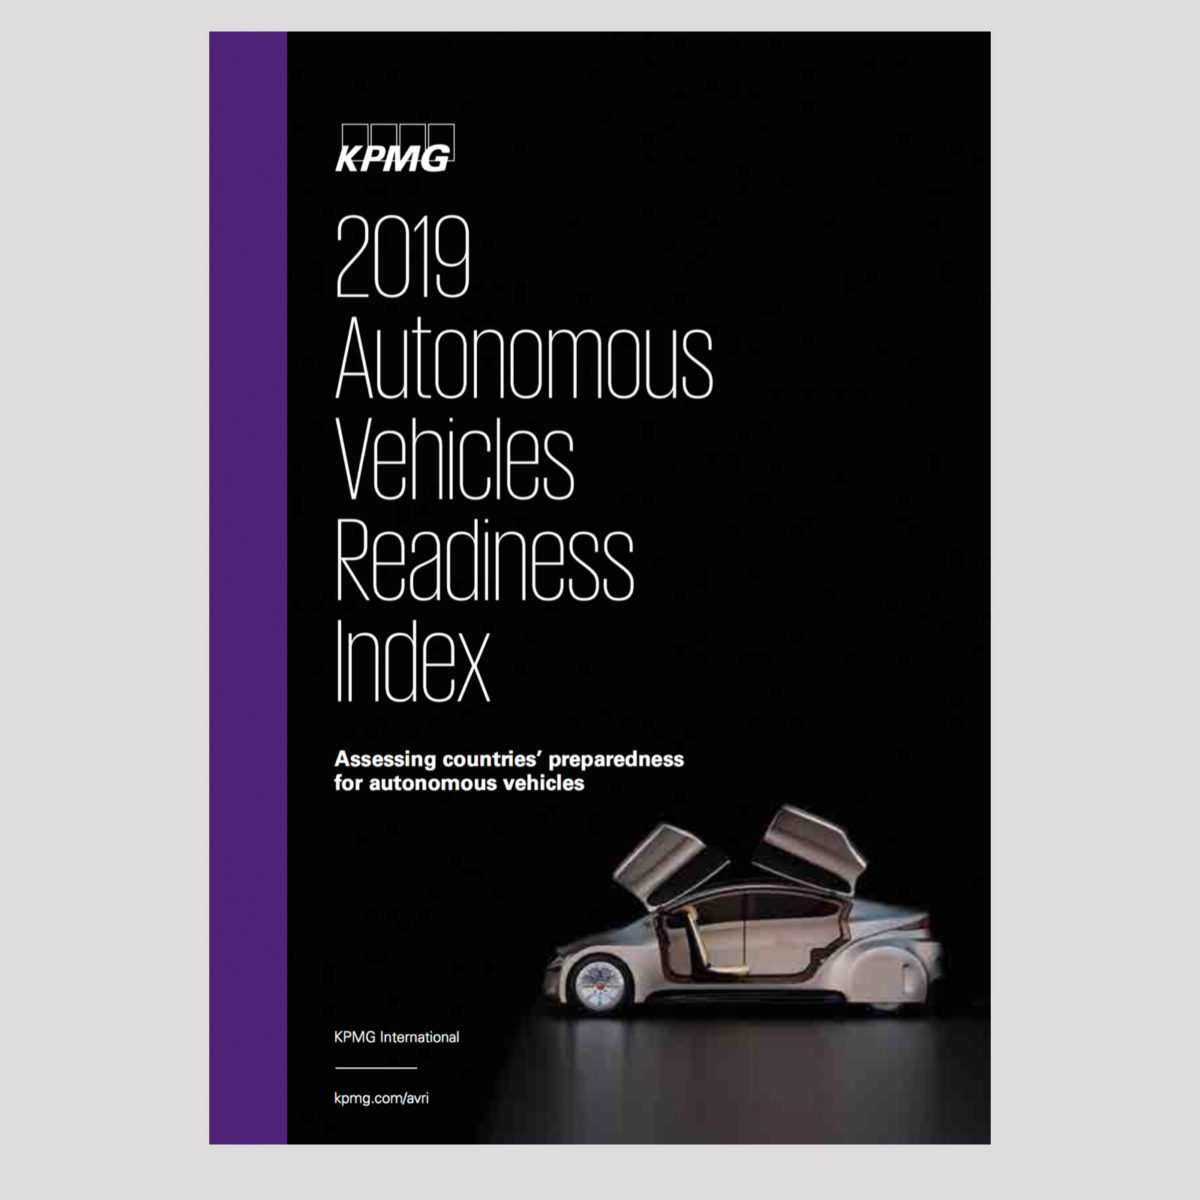 UK drops to 7th in Autonomous Vehicles Readiness Index